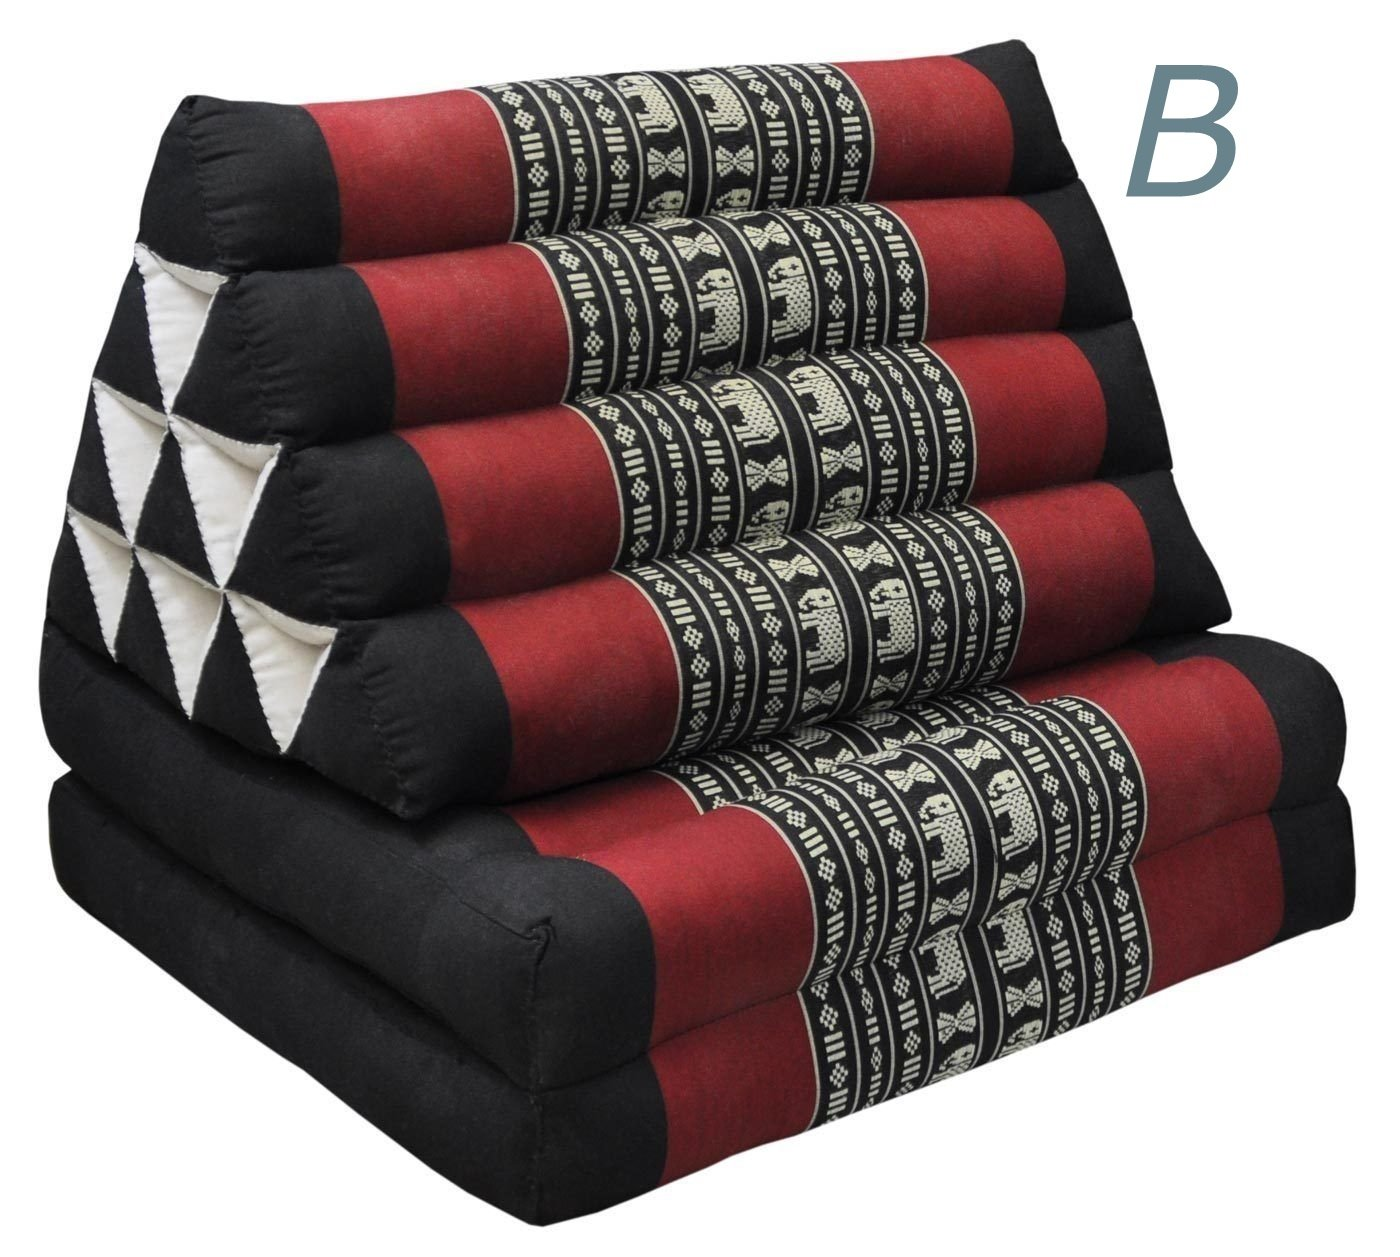 Tungyashop@thai Traditional Cushion Kapok Mattress (Red-black, 2 Fold) by NOINOI